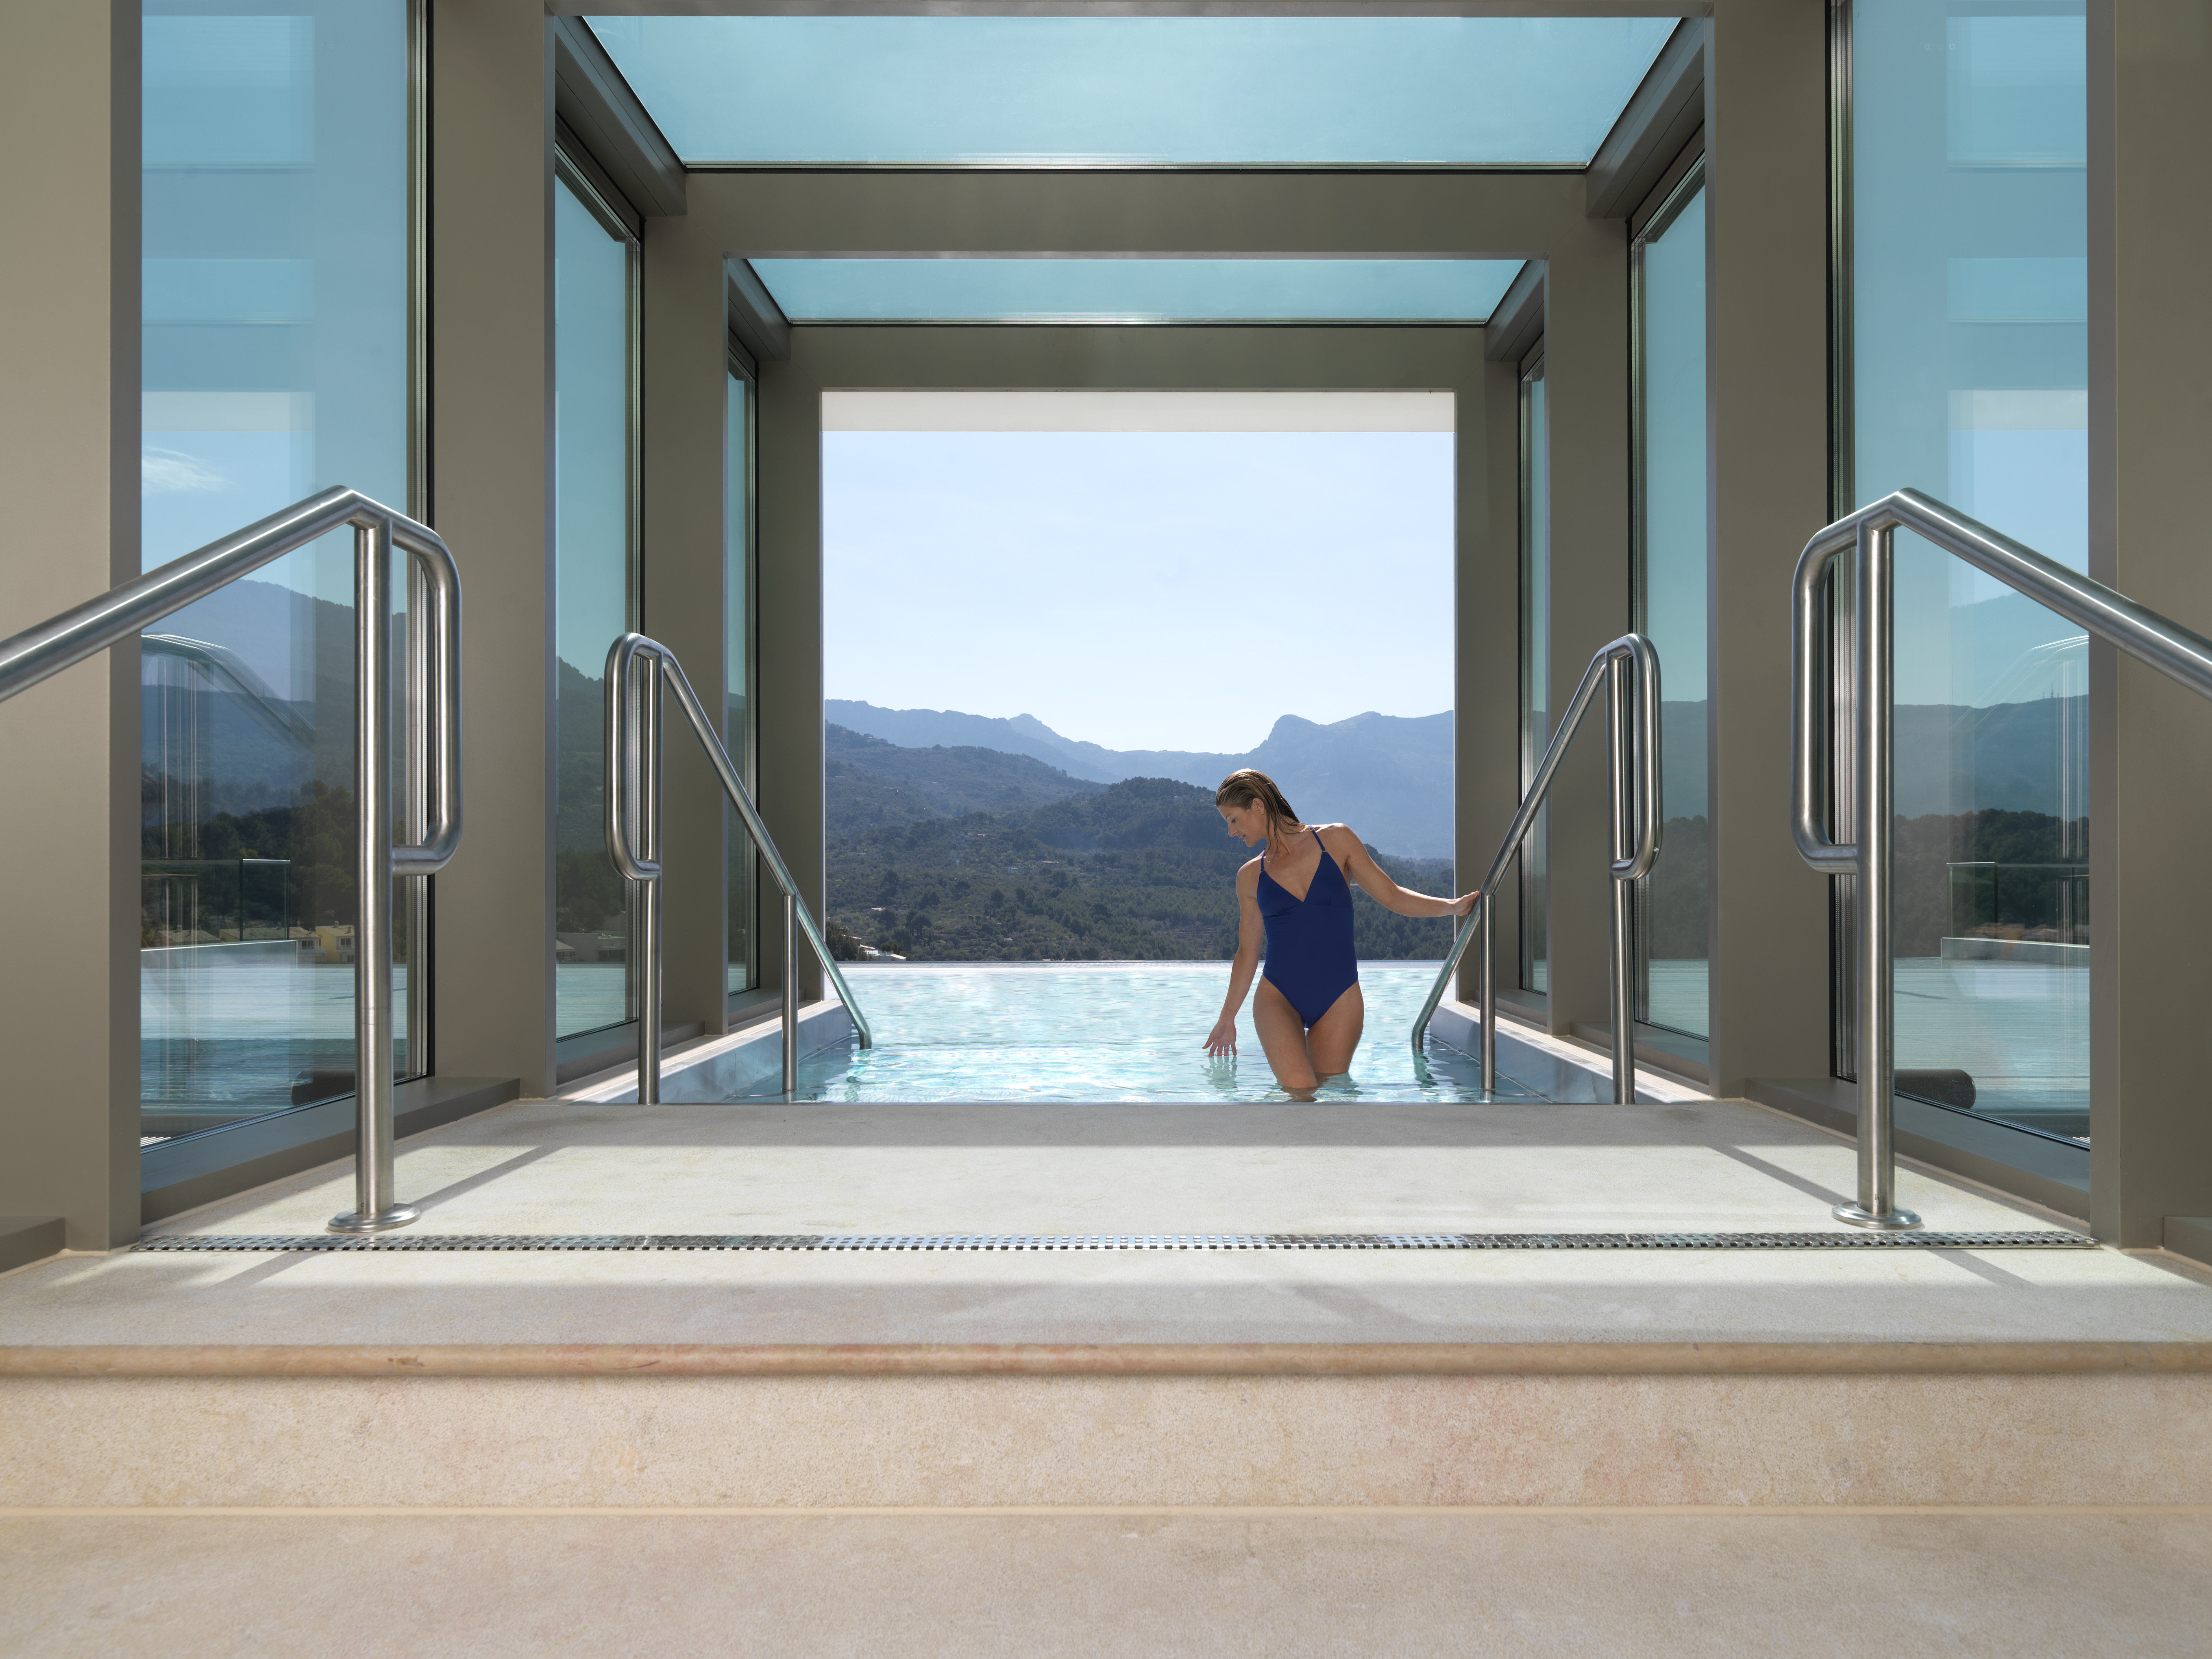 Hydro pool - Upgrades and special offers with MallorcanTonic at Jumeirah Port Soller Hotel and Spa